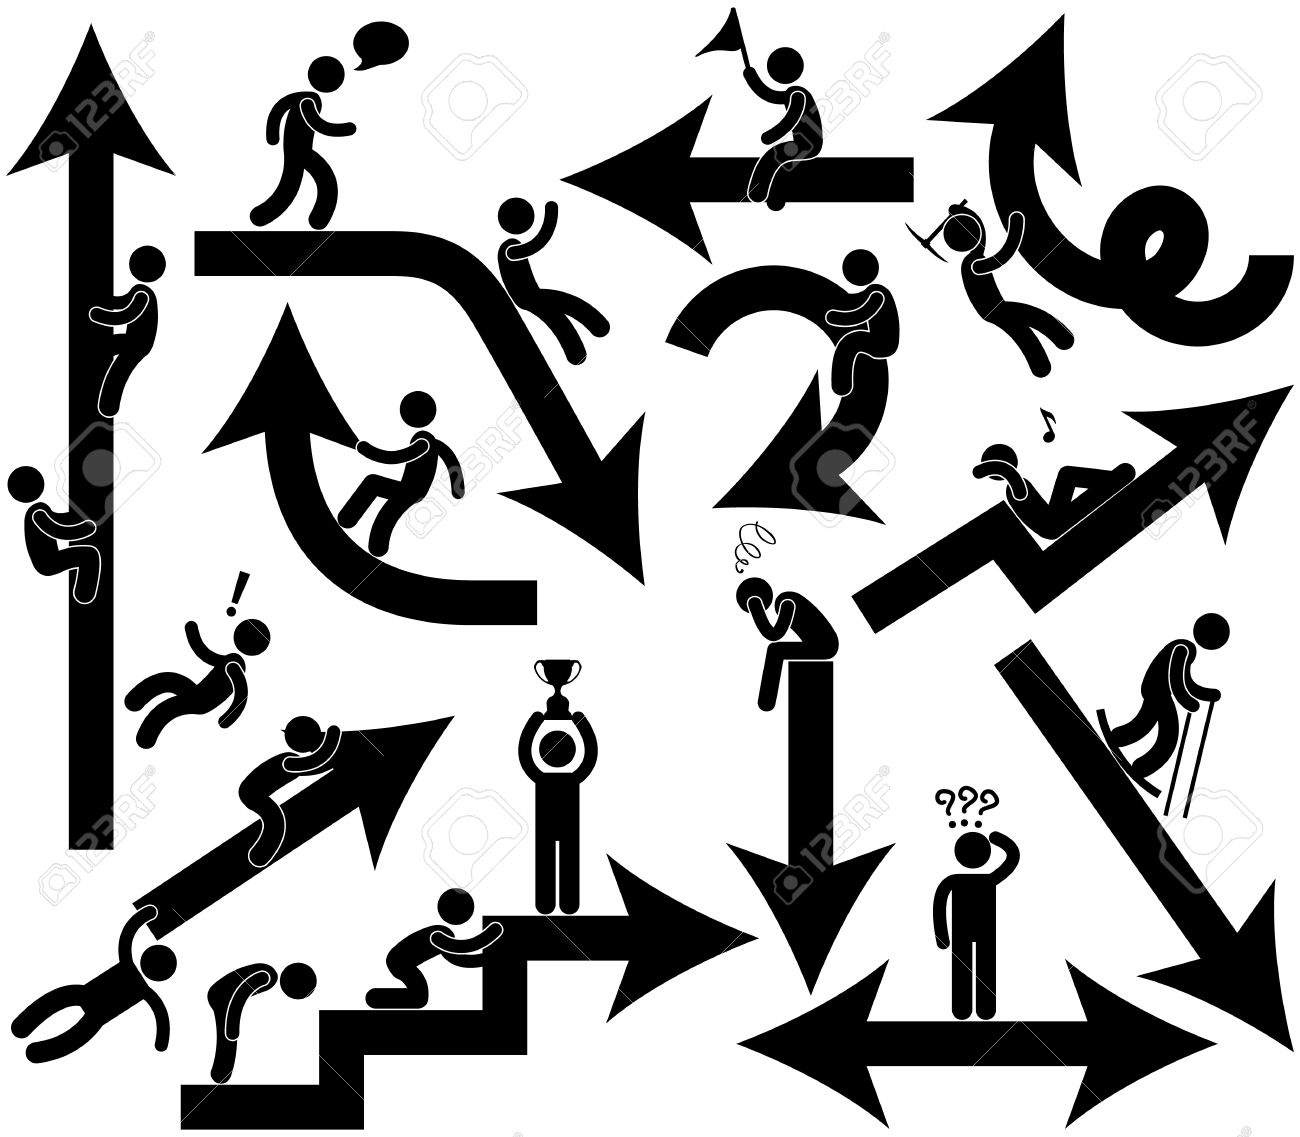 Business People Emotion Arrow Sign Pictogram Symbol Icon - 18812307